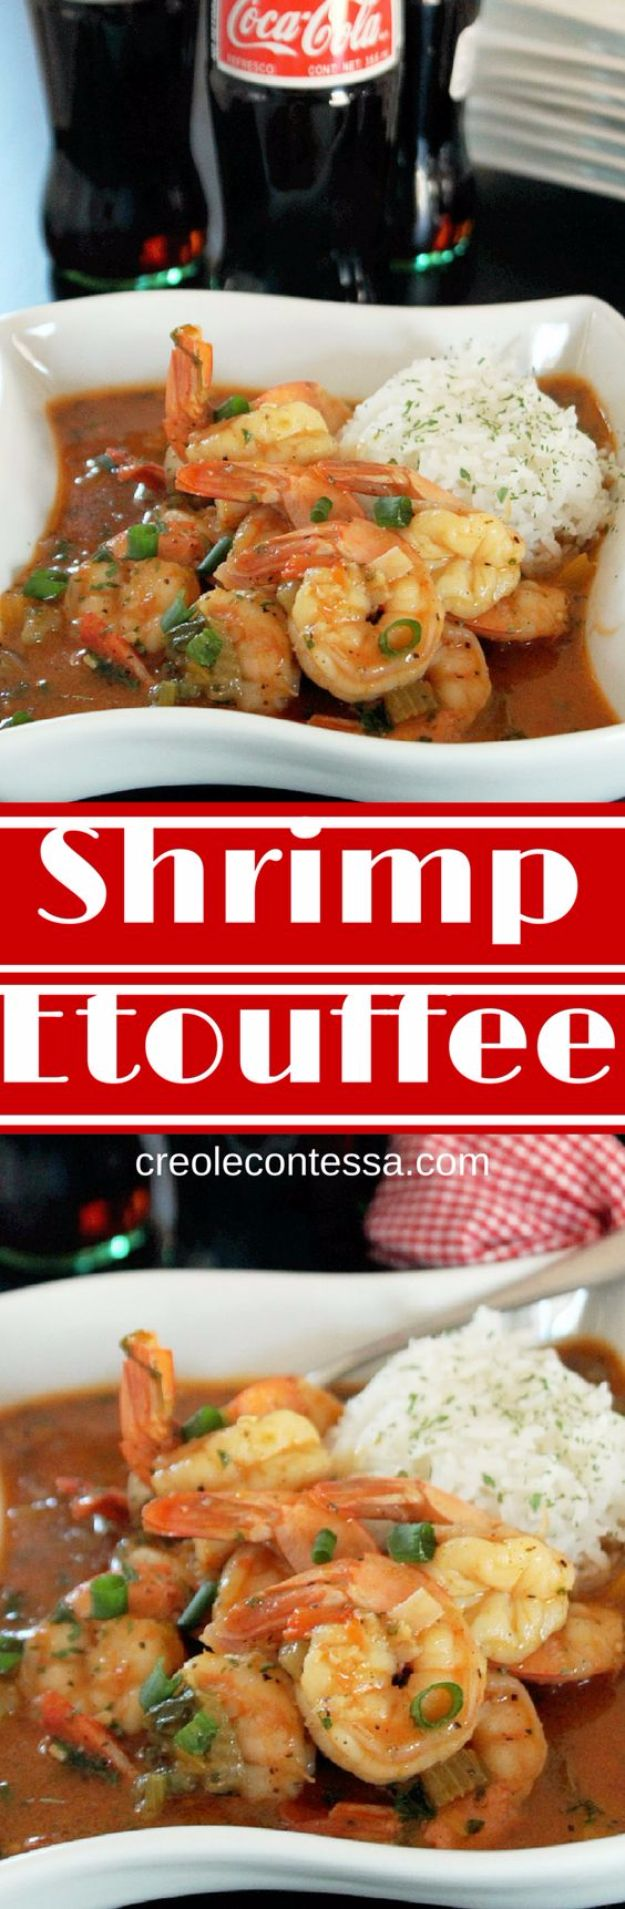 Best Coca Cola Recipes - Shrimp Etouffee with Coca Cola - Make Awesome Coke Chicken, Coca Cola Cake, Meatballs, Sodas, Drinks, Sweets, Dinners, Meat, Slow Cooker and Recipe Ideas With Cake Mixes - Fun Food Projects For Families and Parties With Step By Step Tutorials http://diyjoy.com/coca-cola-recipes